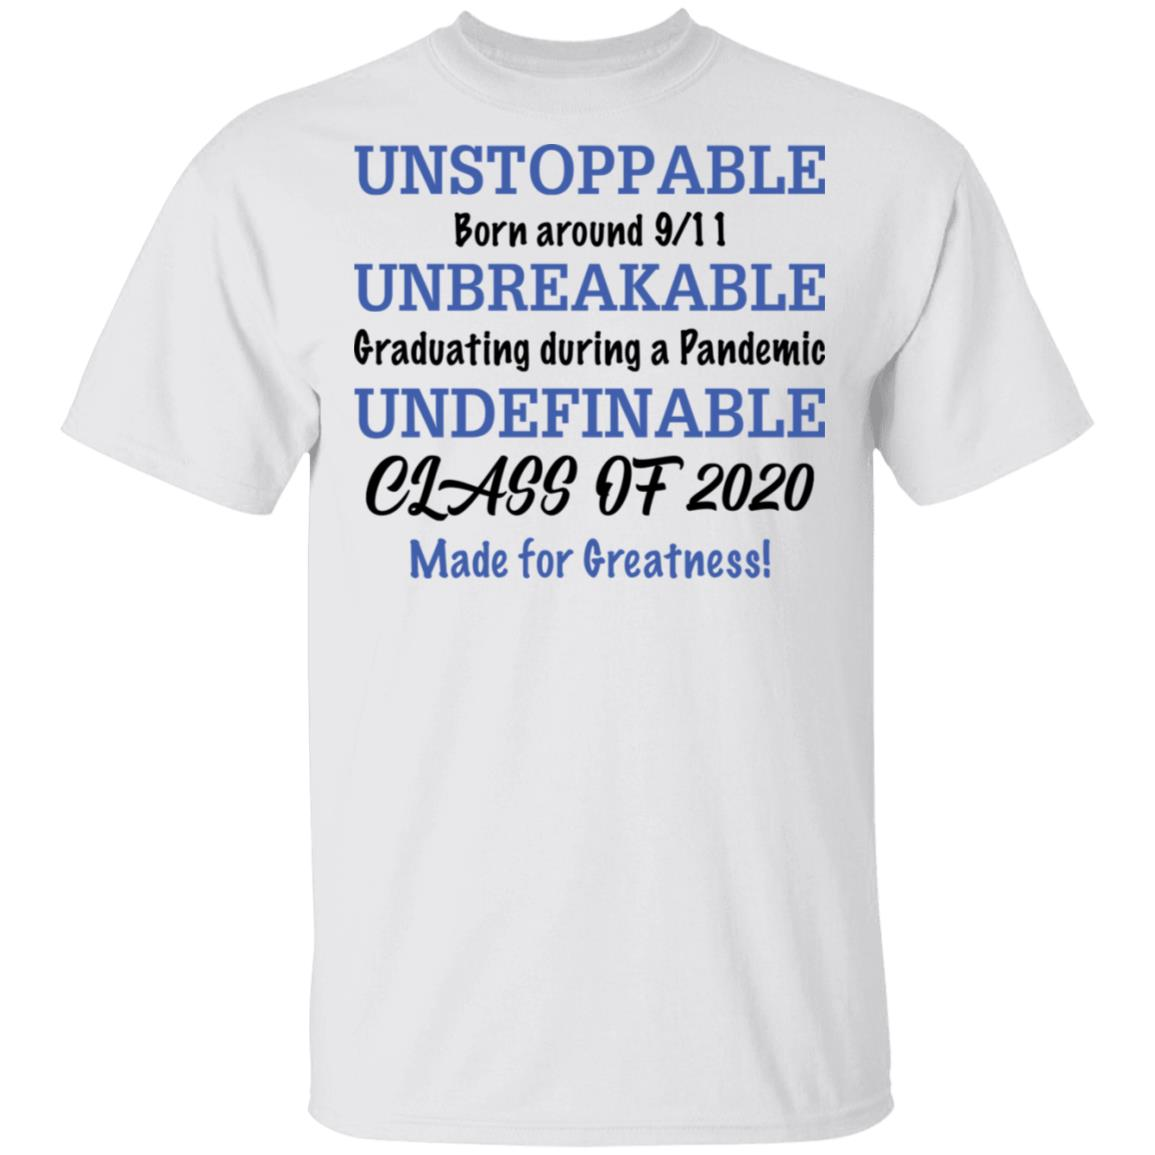 Unstoppable born around 9/11 unbreakable graduating during a pandemic shirt, sweatshirt